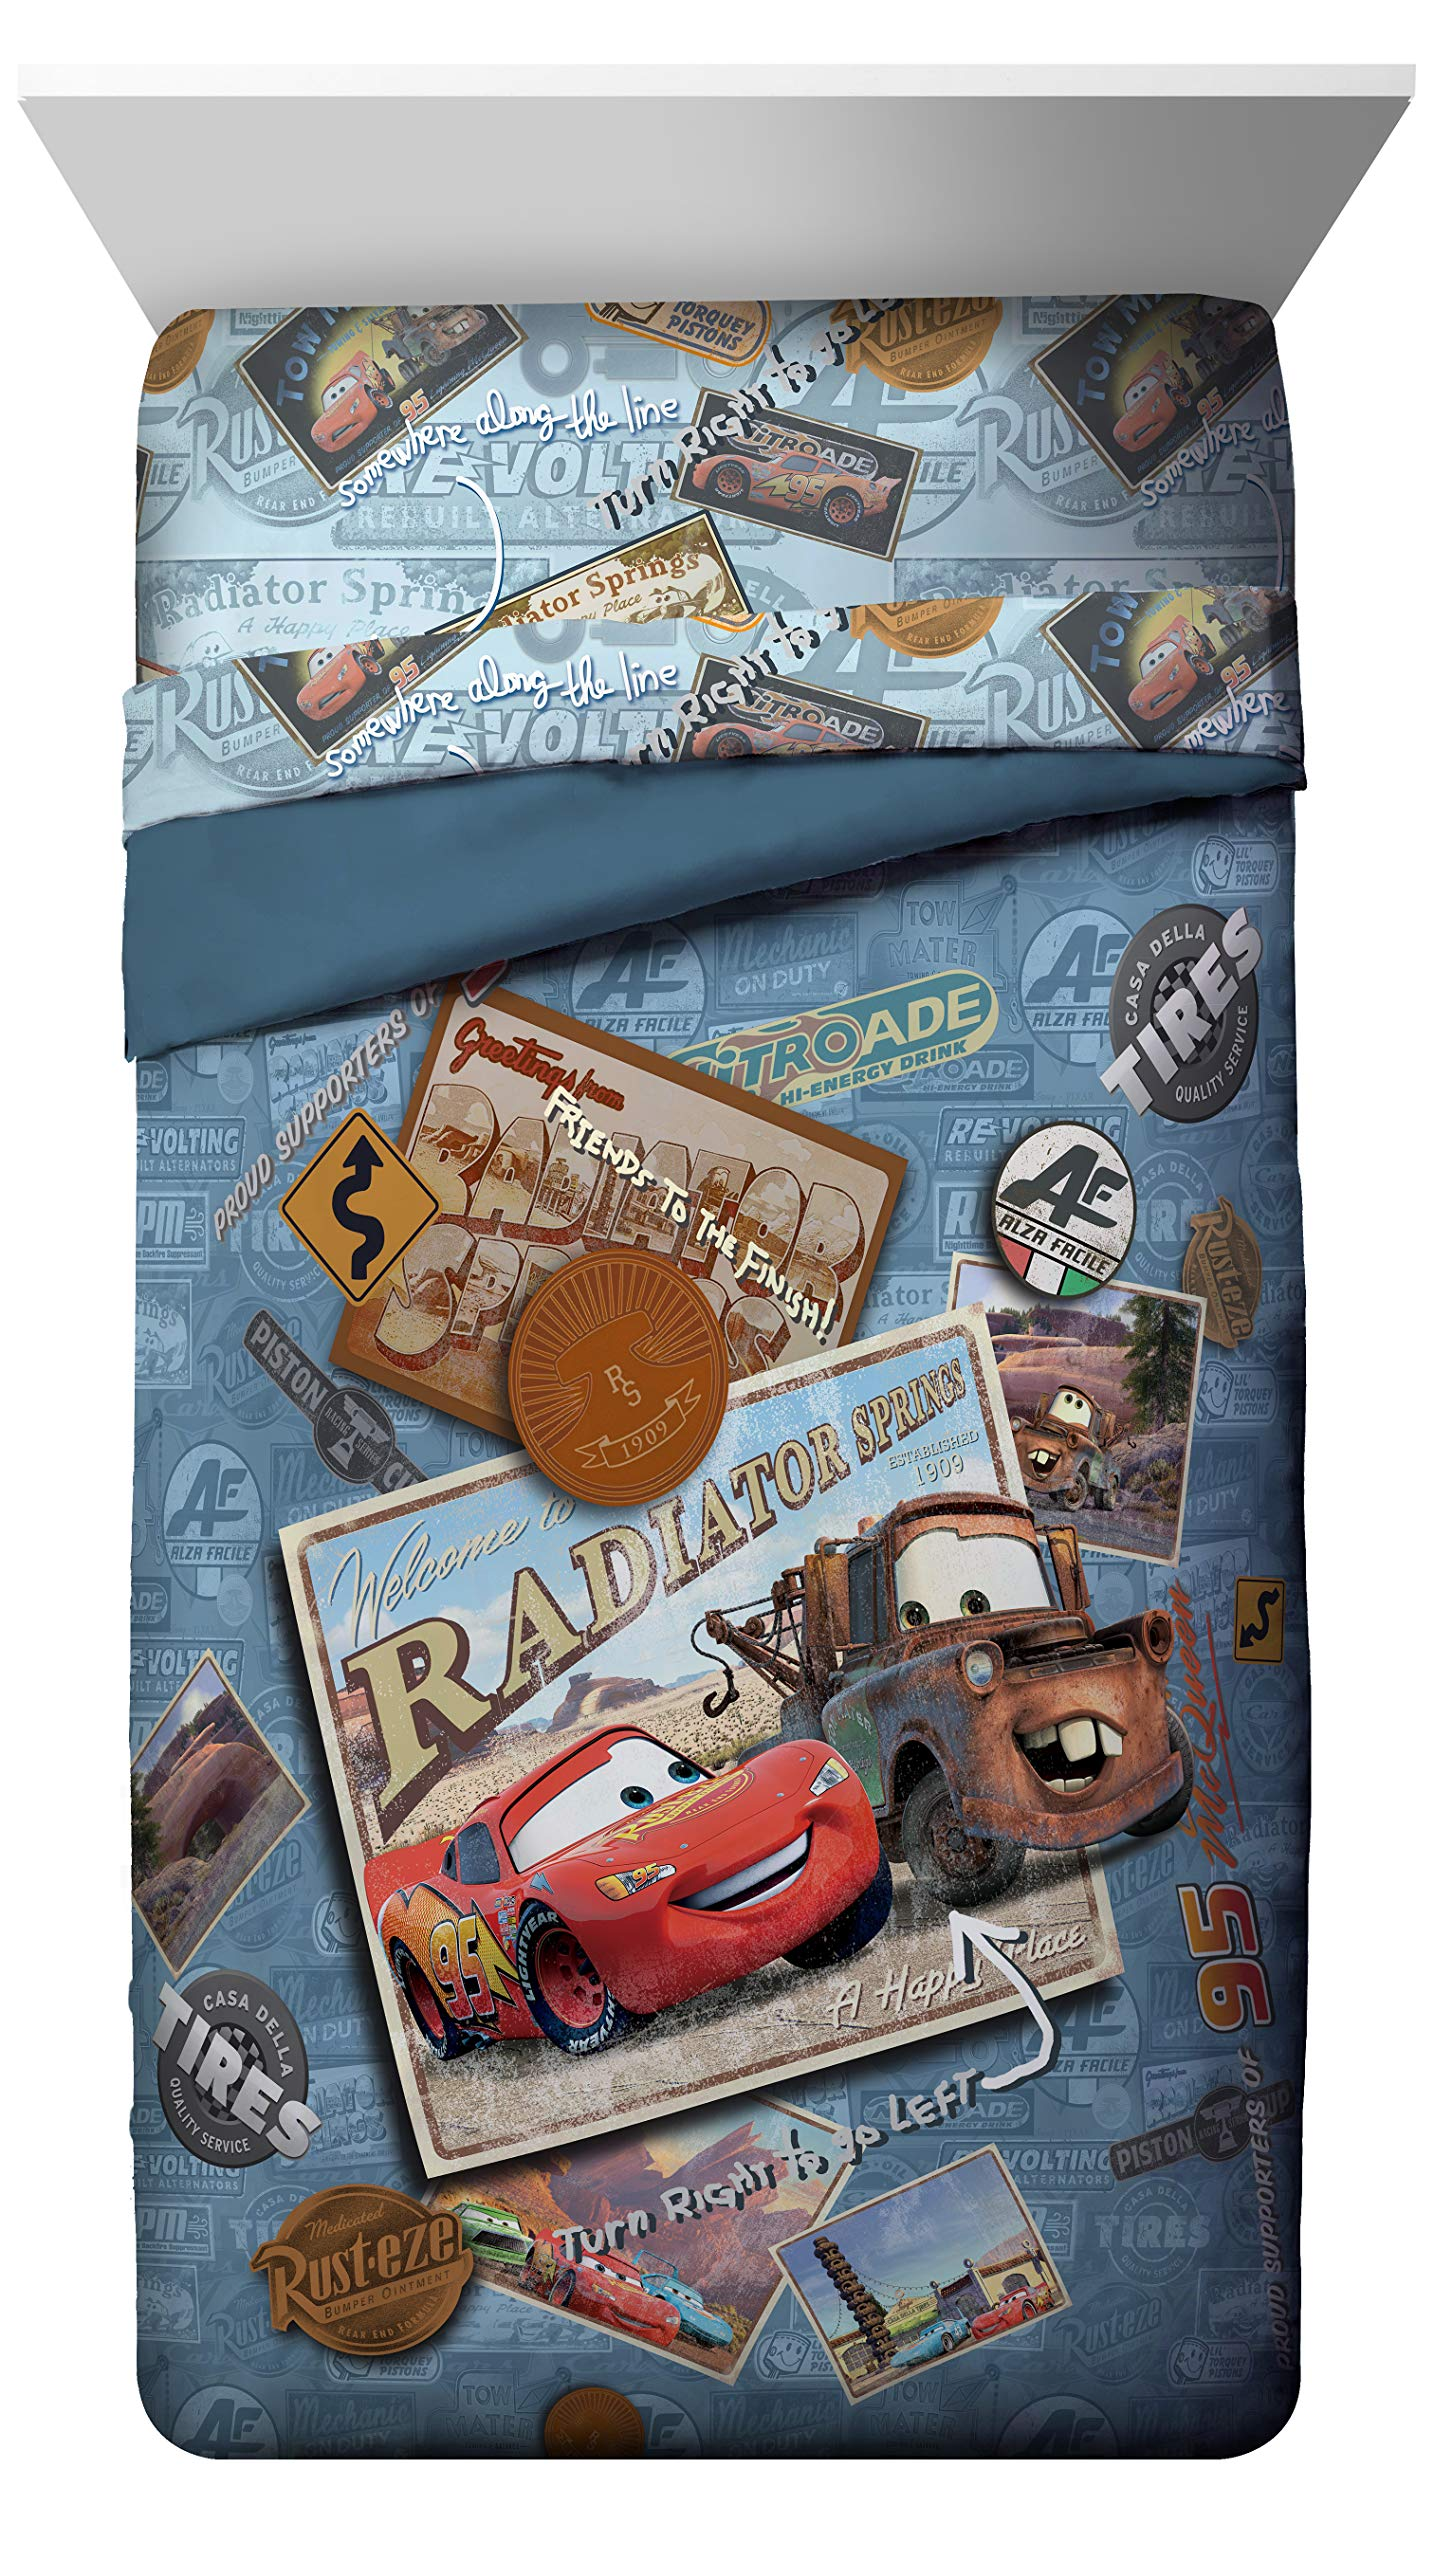 Disney Pixar Cars  Tune Up Twin/Full Comforter - Super Soft Kids Reversible Bedding features Lightning McQueen and Mater - Fade Resistant Polyester Microfiber Fill (Official Disney Pixar Product) by Jay Franco